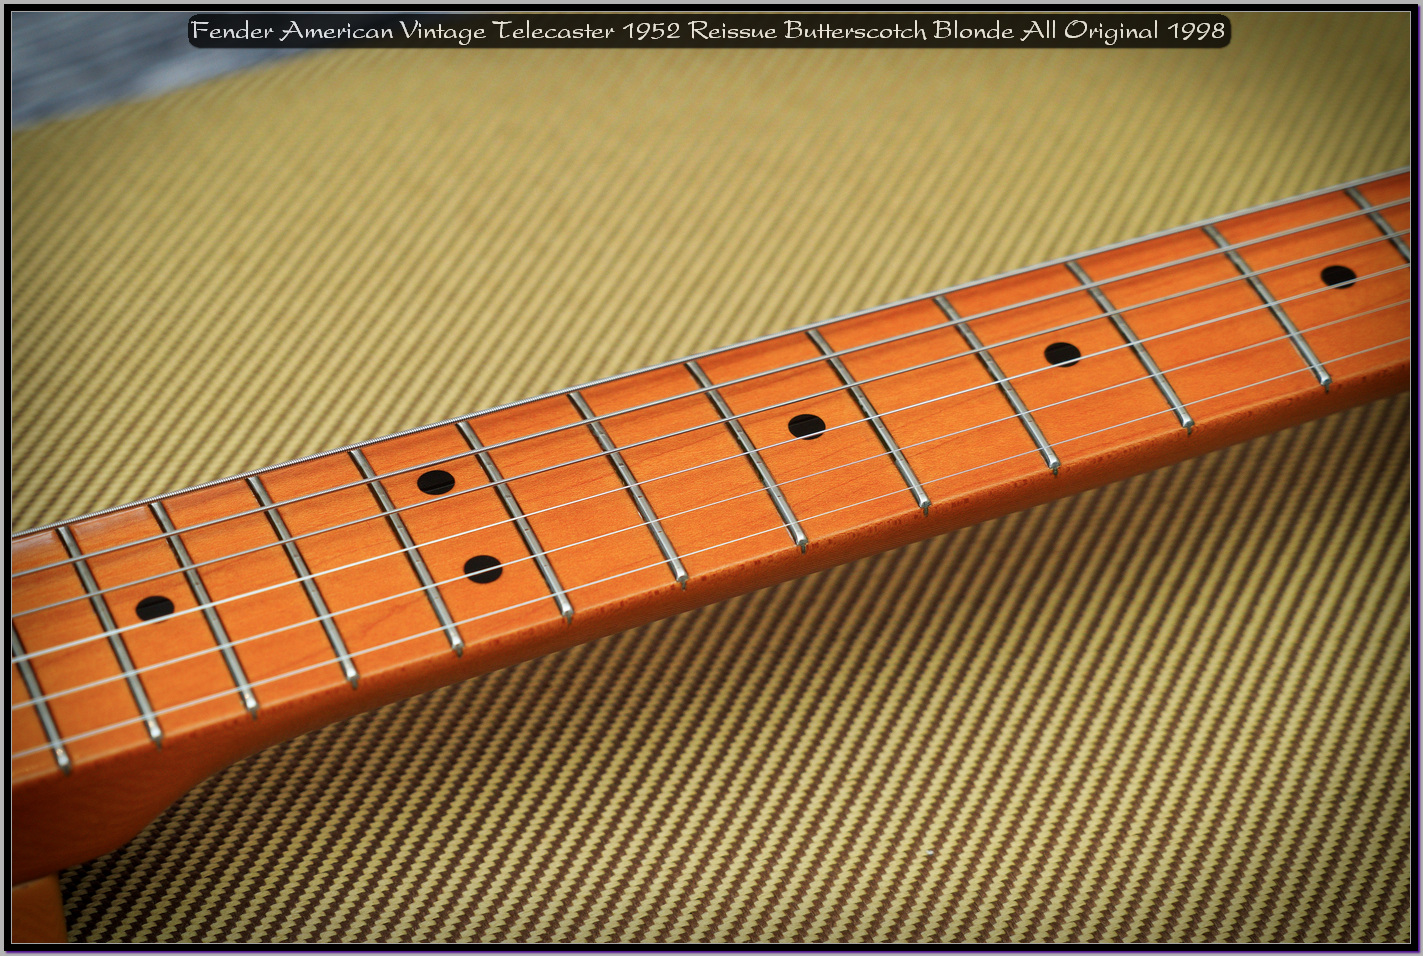 Fender American Vintage Telecaster 1952 Reissue Butterscotch Blonde All Original 1998 07_x1440.jpg